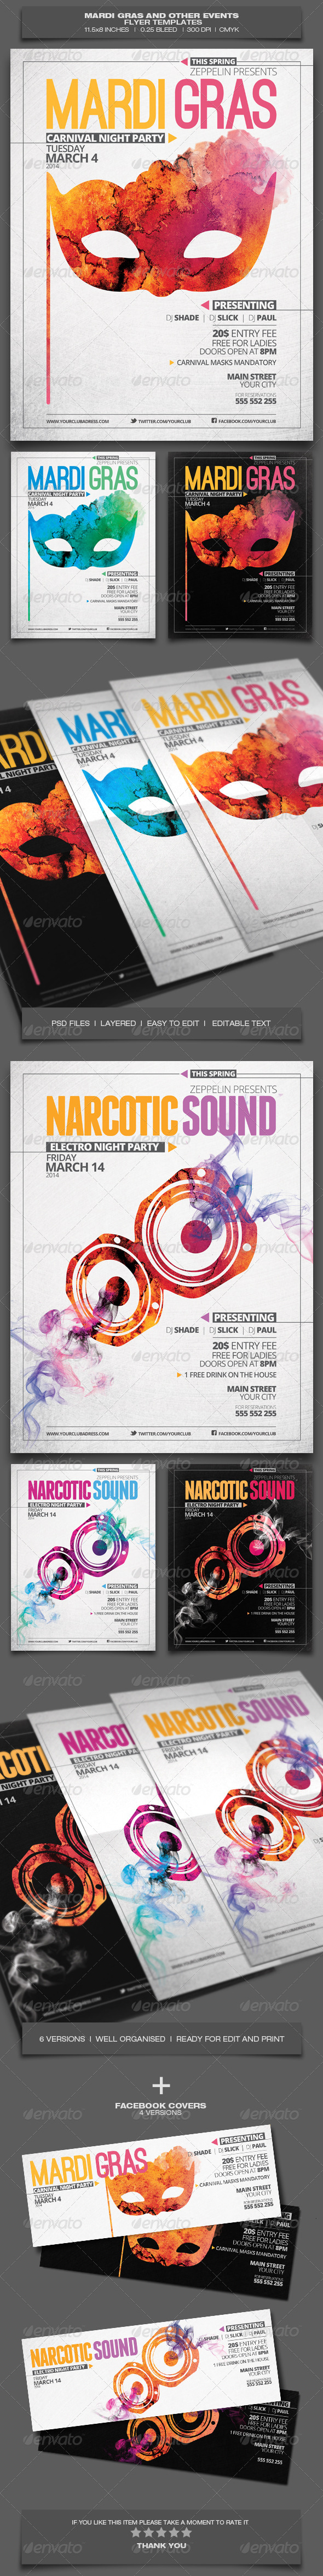 GraphicRiver Mardi Gras and Other Events Party Flyer Template 6526614